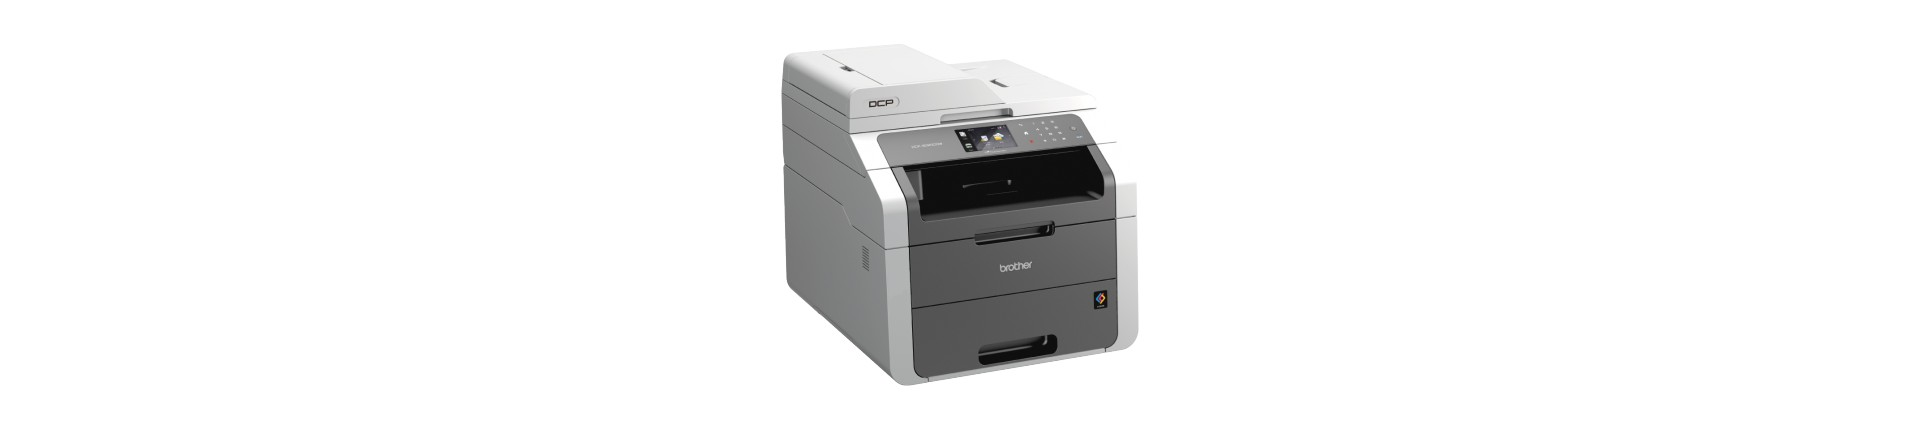 Toner Brother DCP-9020CDW